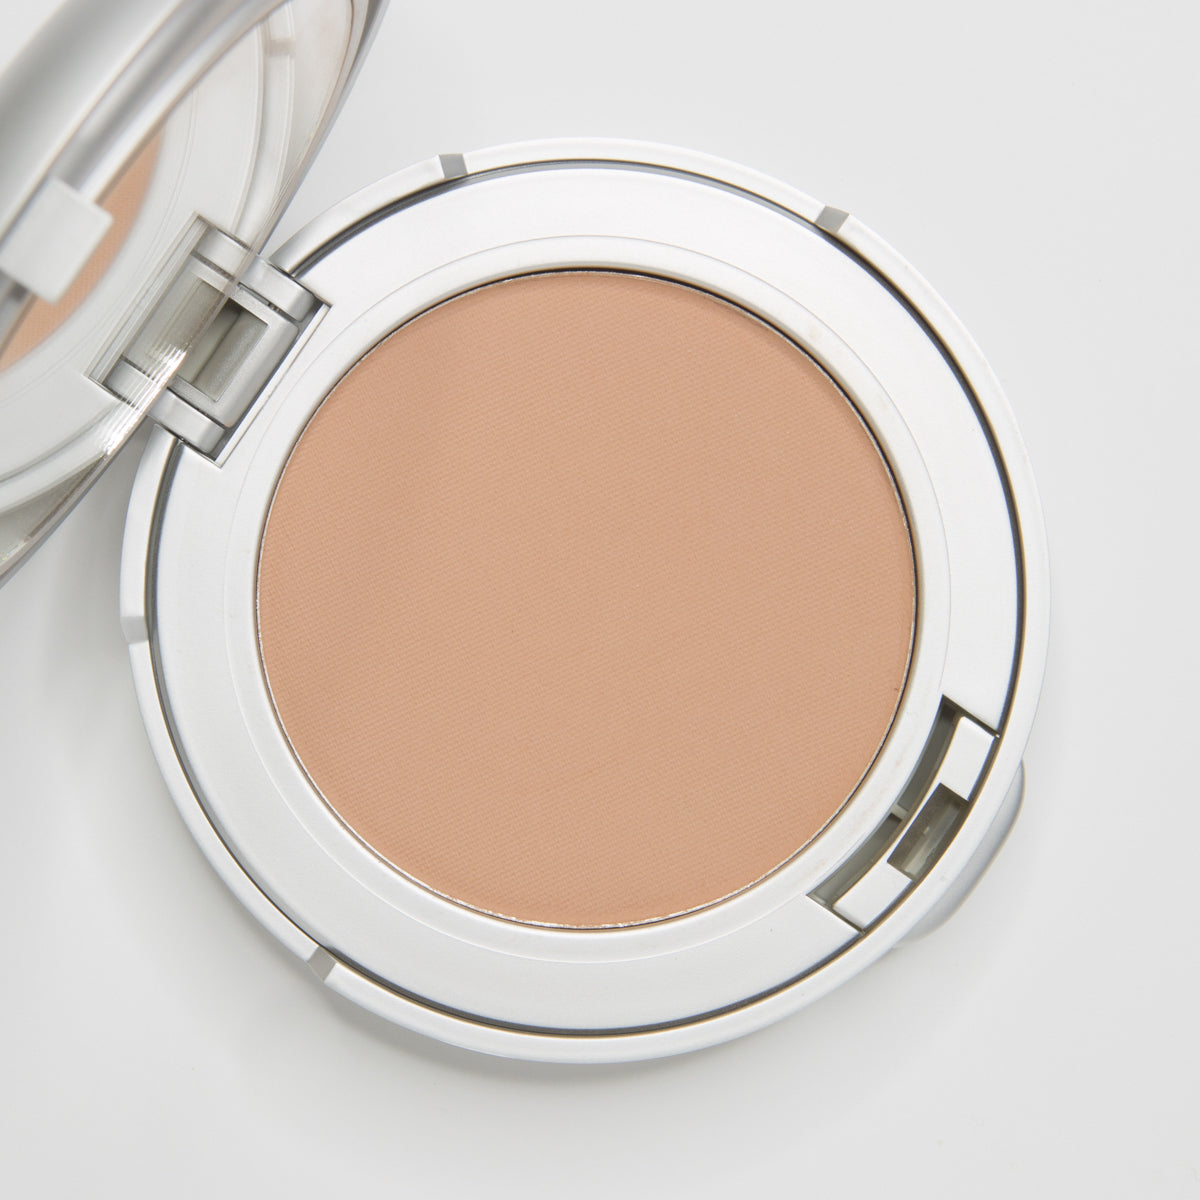 Evening Sun Satin Finish Powder